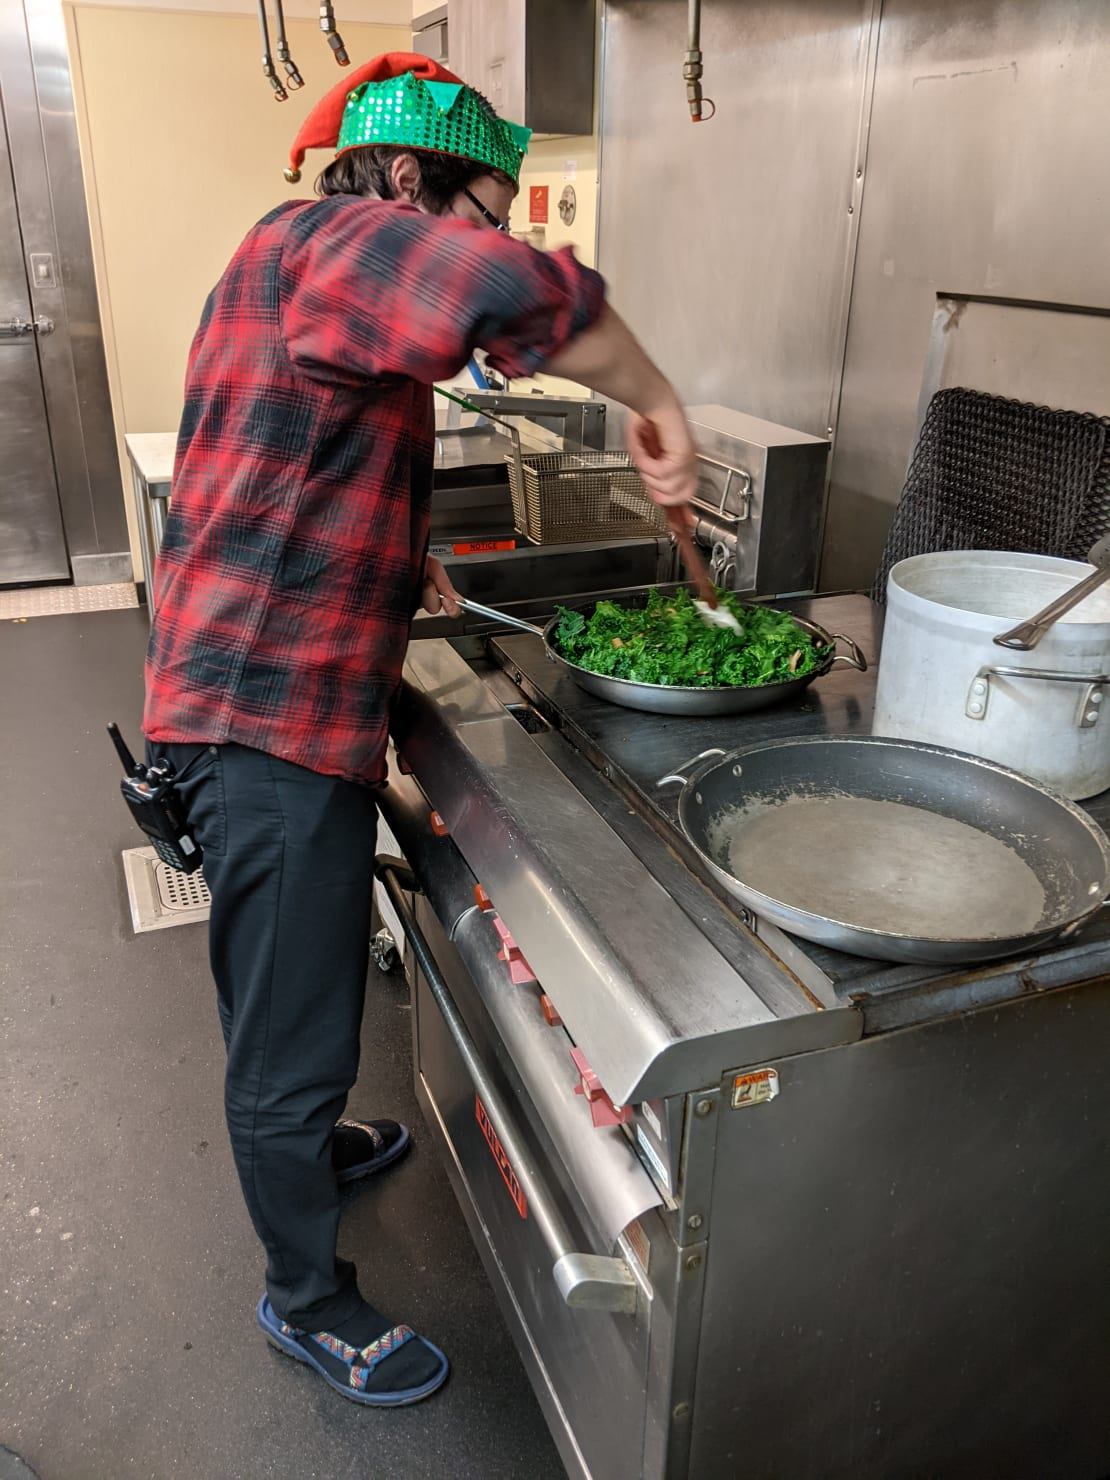 Person seen from side, standing at industrial stove and stirring a pan of greens.